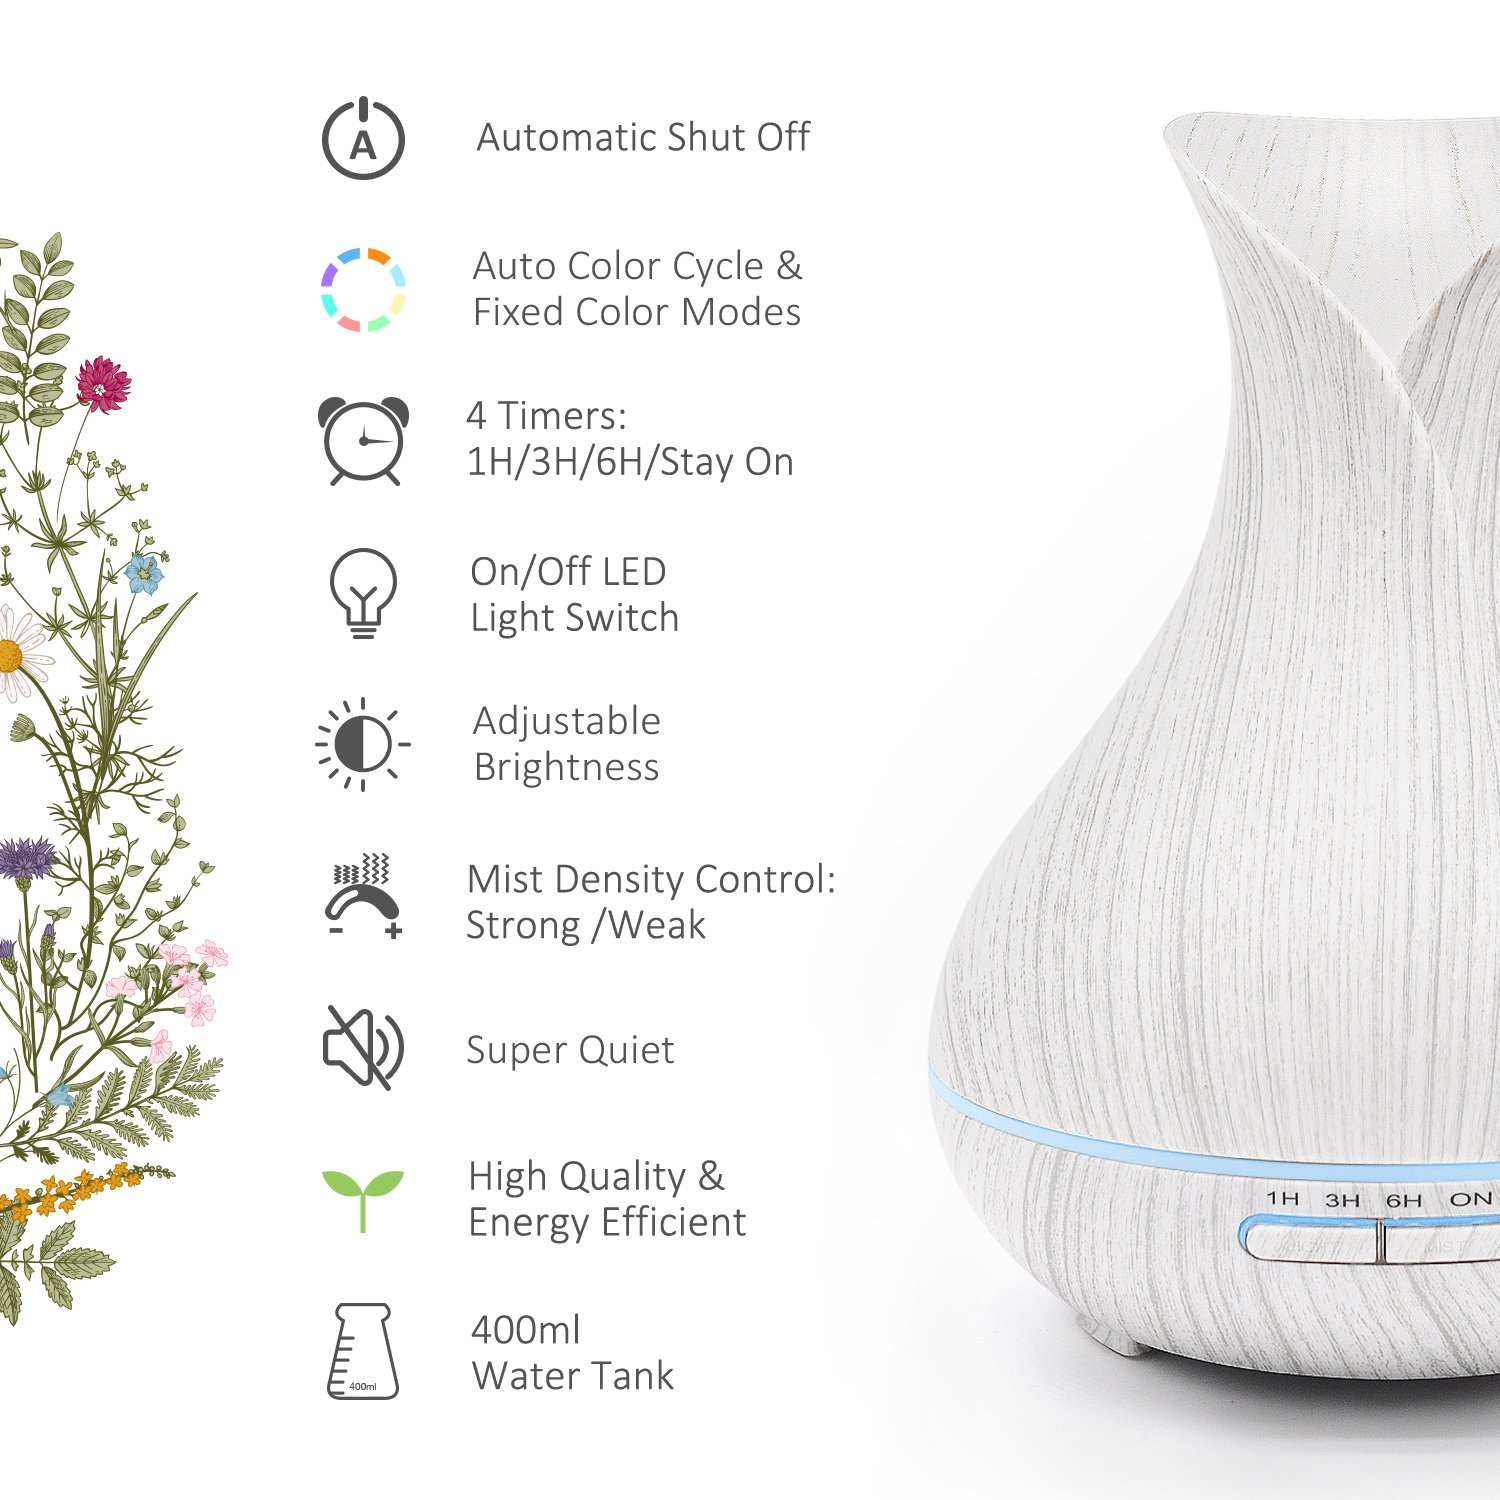 ASAKUKI 400ML Premium, Essential Oil Diffuser, Quiet 5-in-1 Humidifier, Natural Home Fragrance Diffuser with 7 LED Color Changing Light and Easy to Clean by ASAKUKI (Image #3)